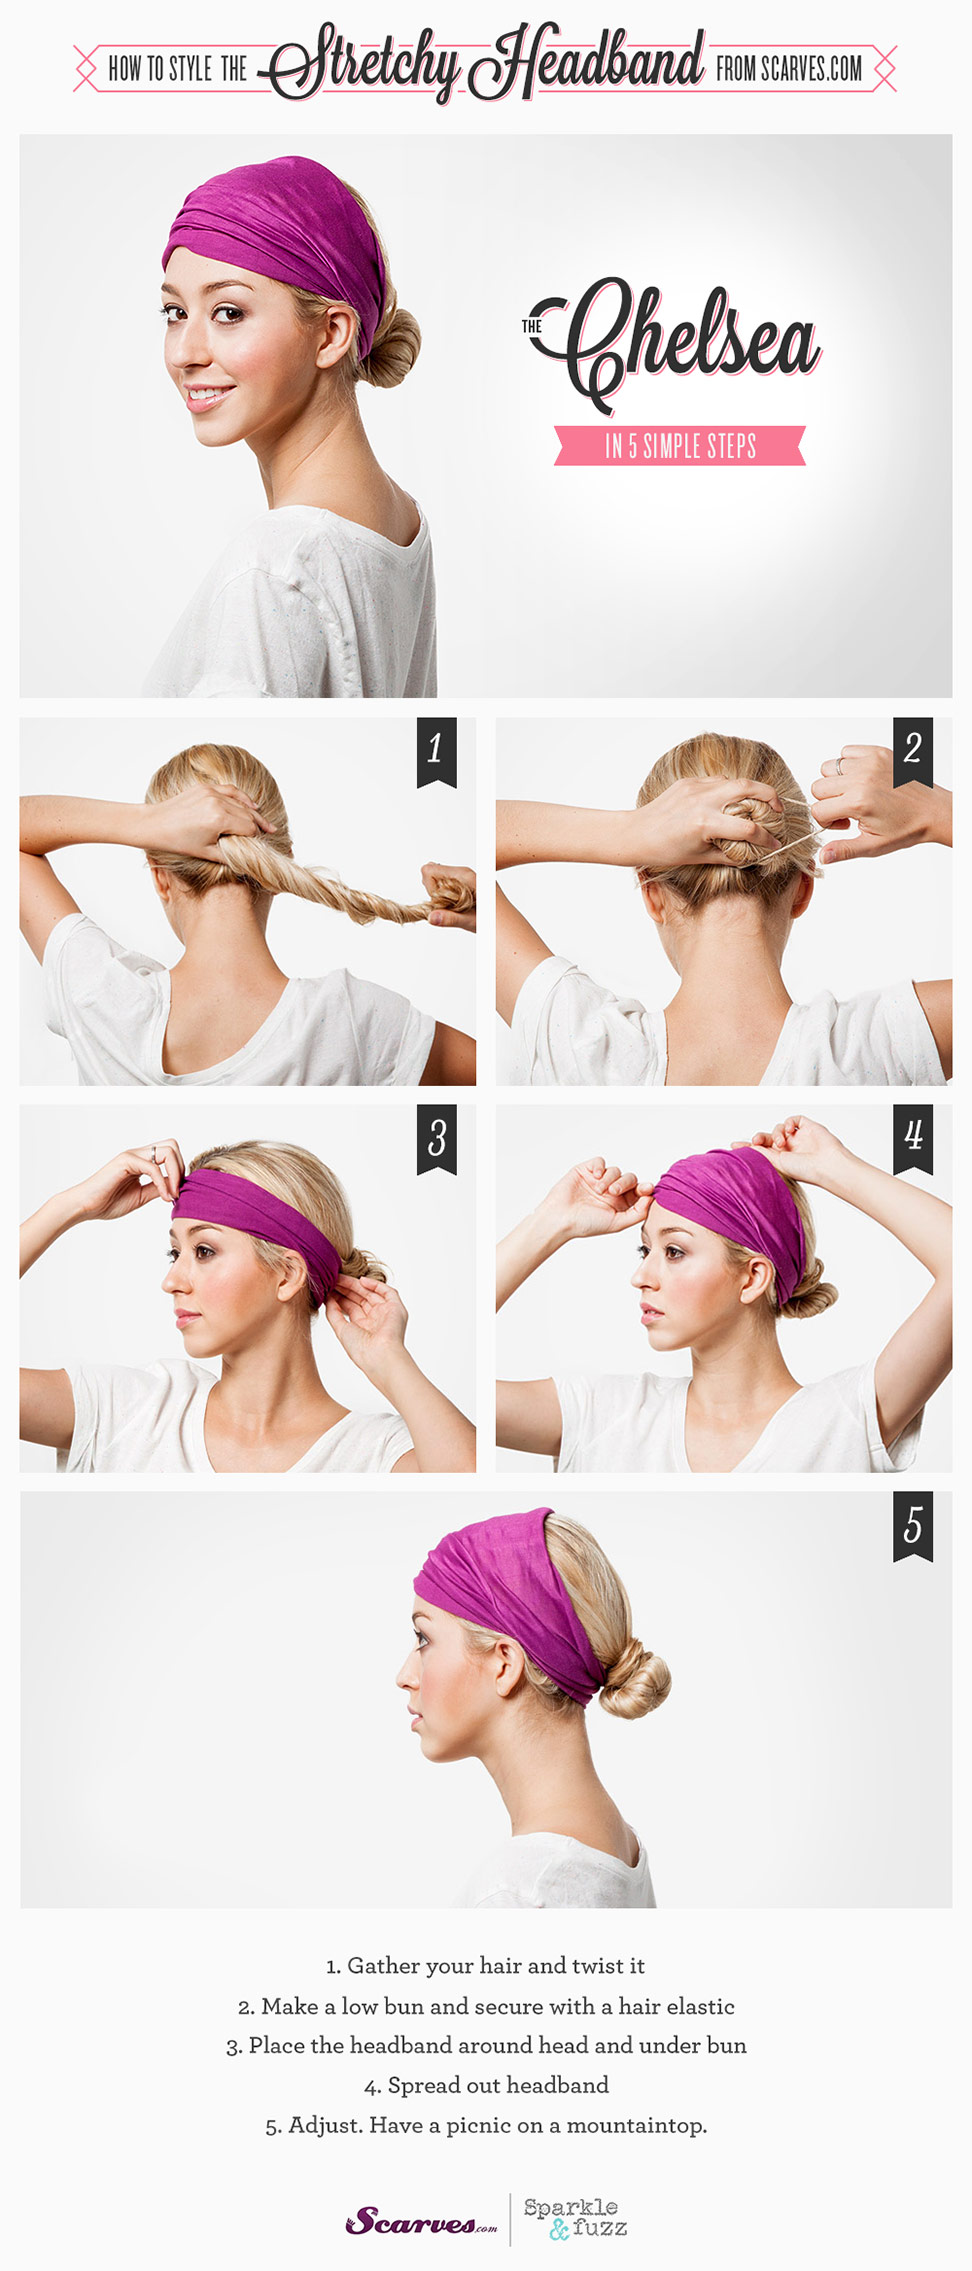 The Chelsea - How to Style a Stretchy Headband